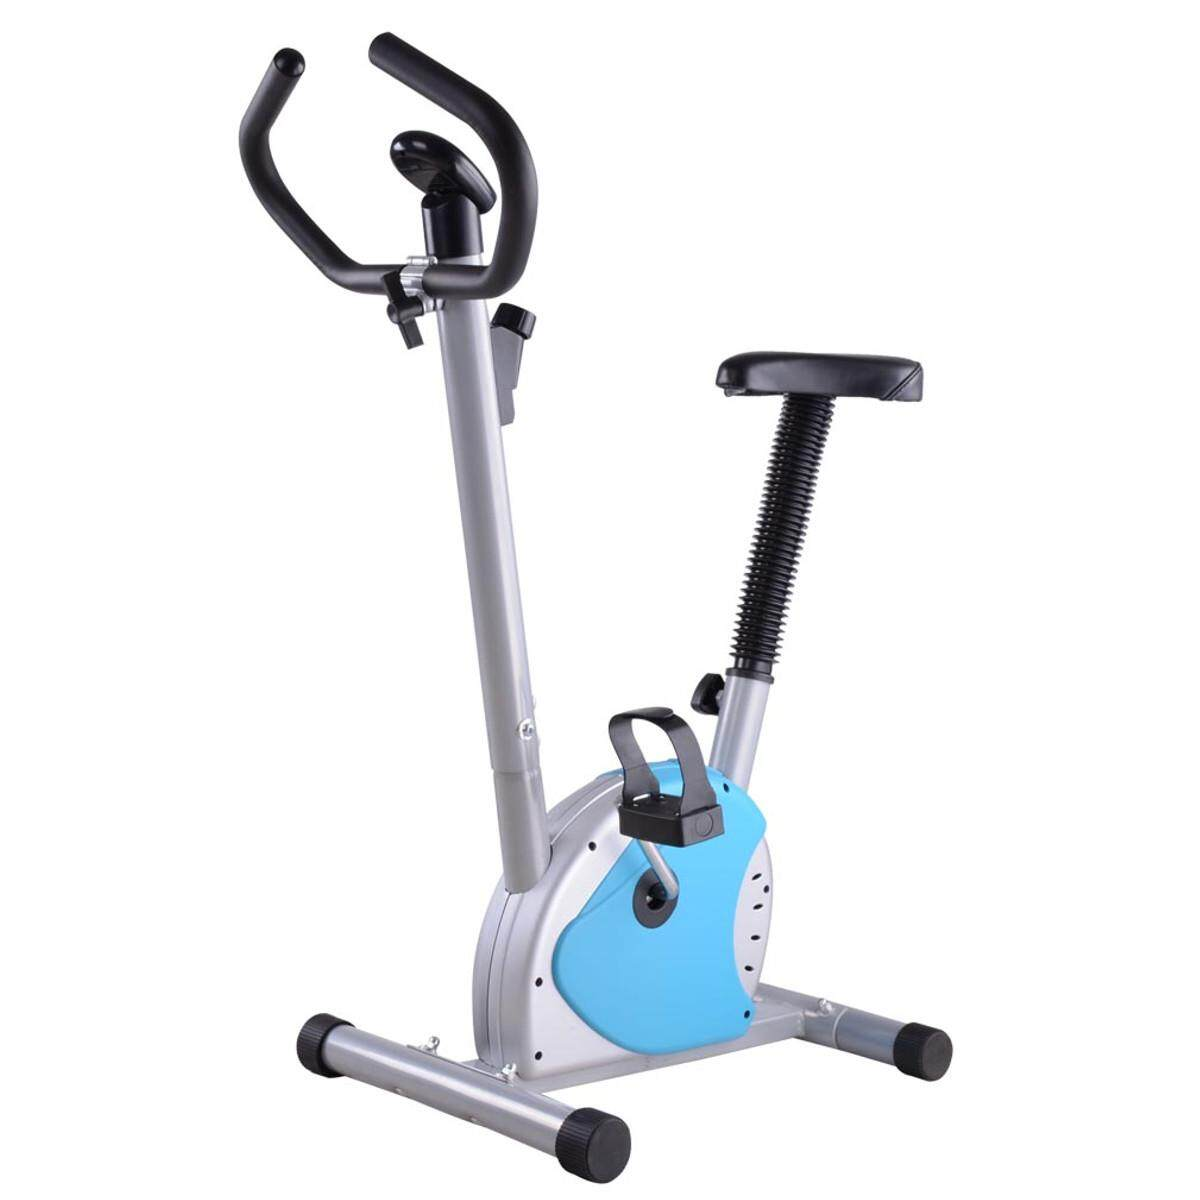 Exercise Bike - Training Bicycle Fitness Cycling Machine Cardio Aerobic Gym Home